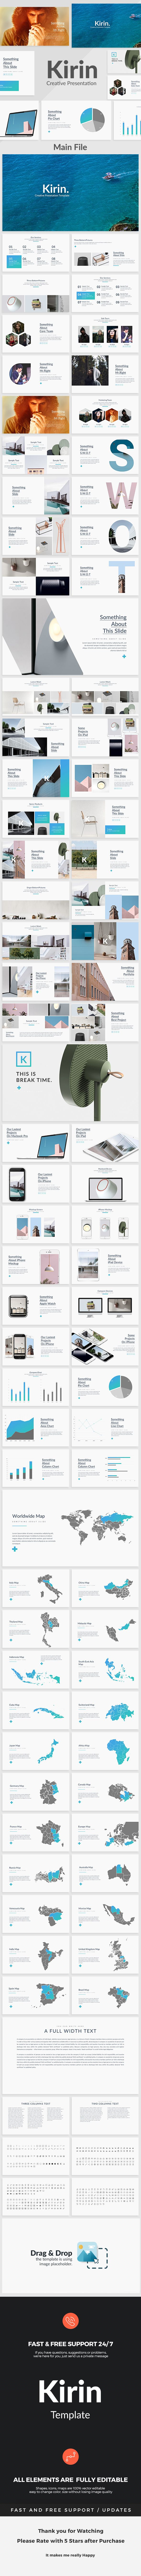 443 best powerpoint images on pinterest | keynote template, ppt, Presentation templates